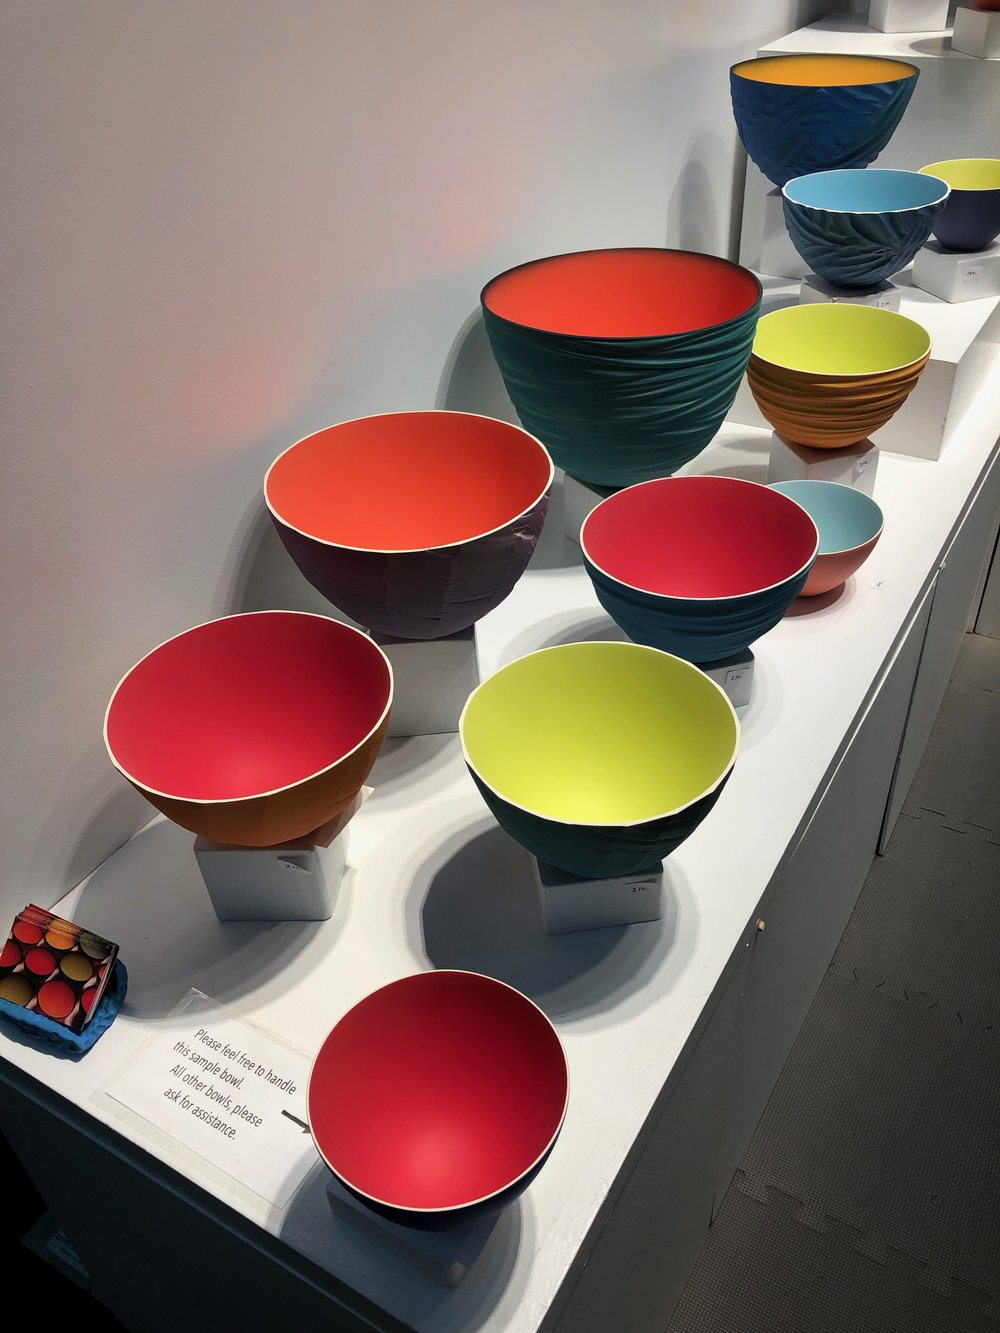 thomas marrison   's bowls remind me of james turrell's light exhibit at mass moca